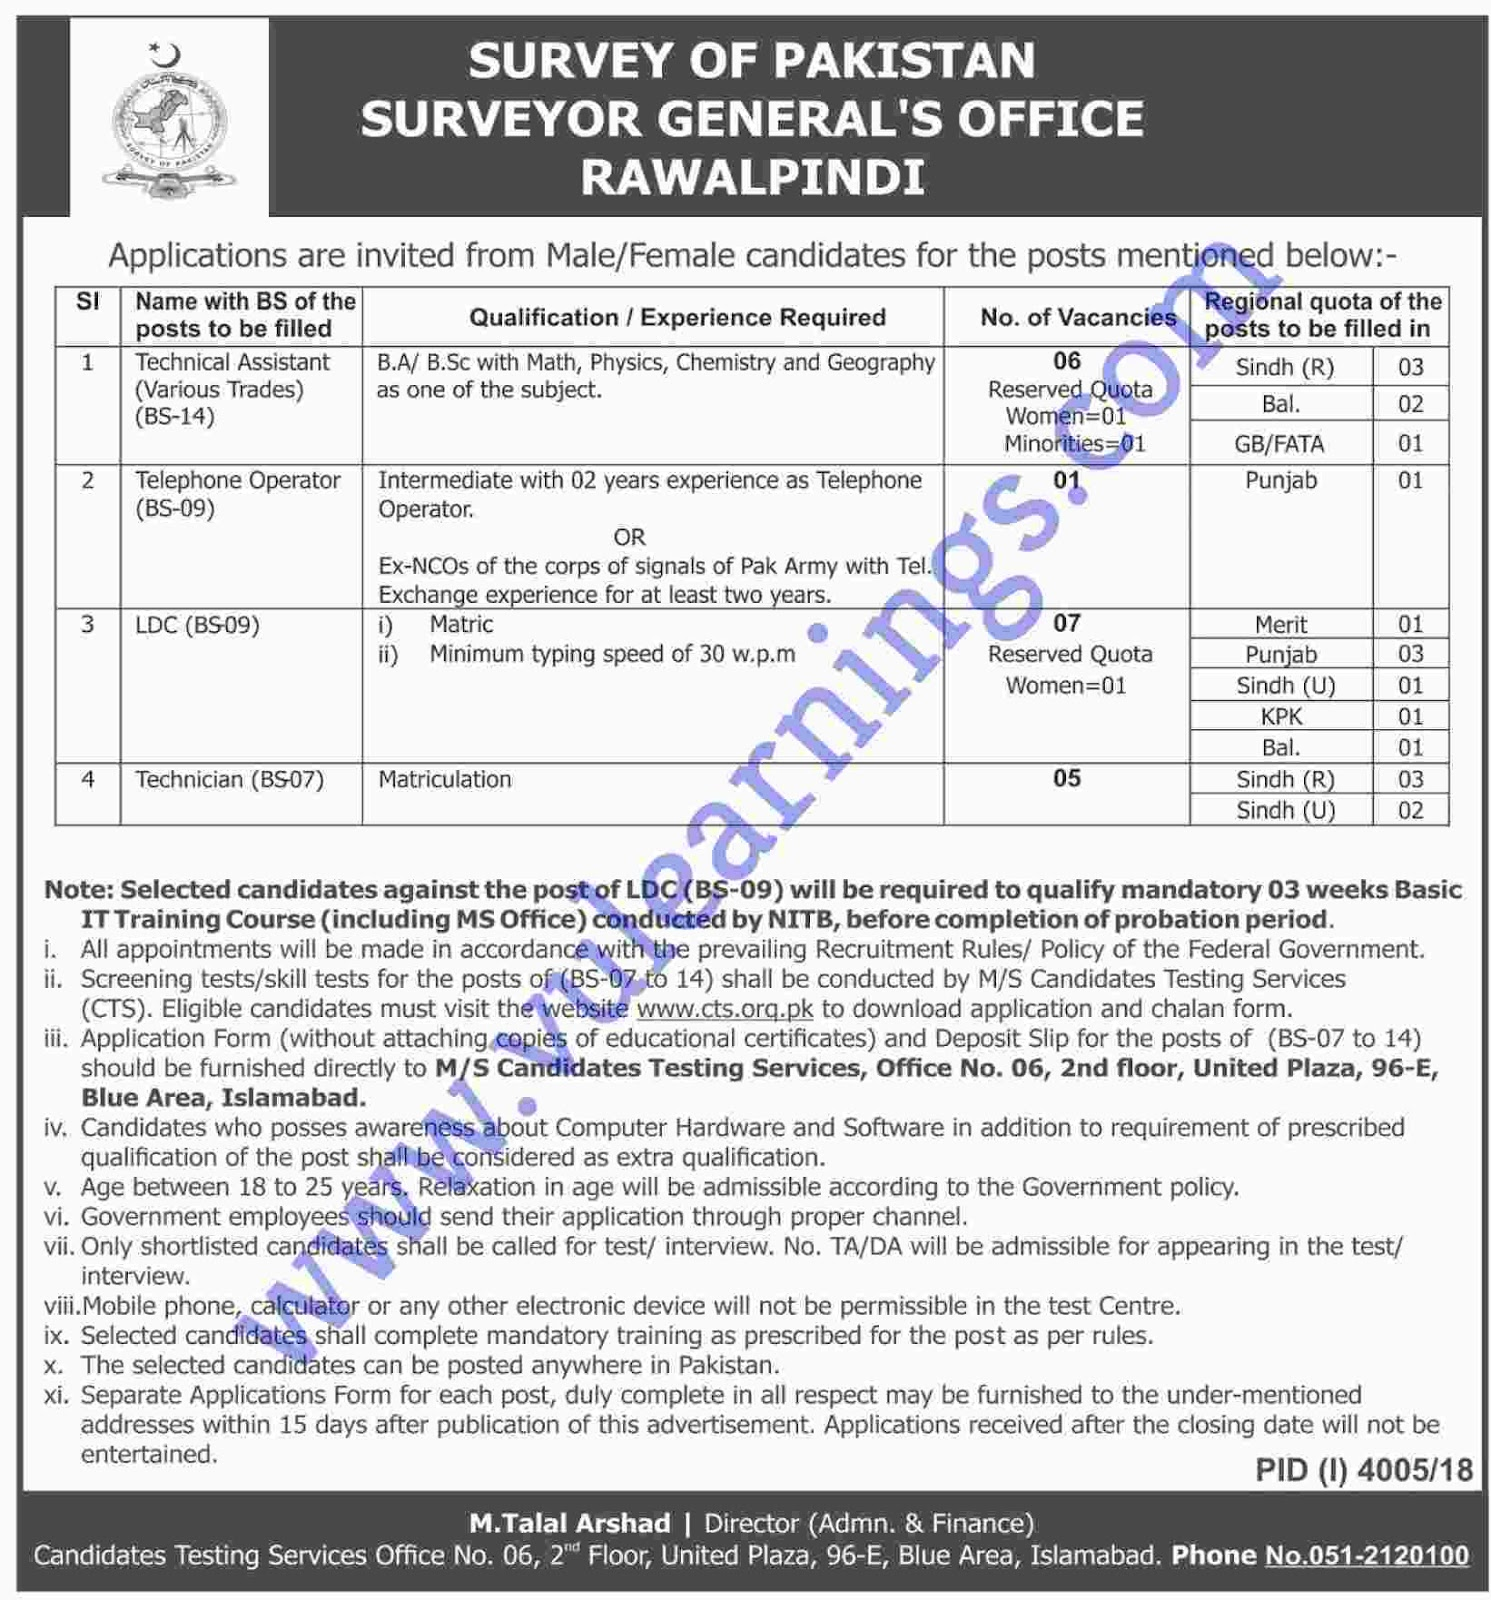 Job in Survey of Pakistan Surveyor